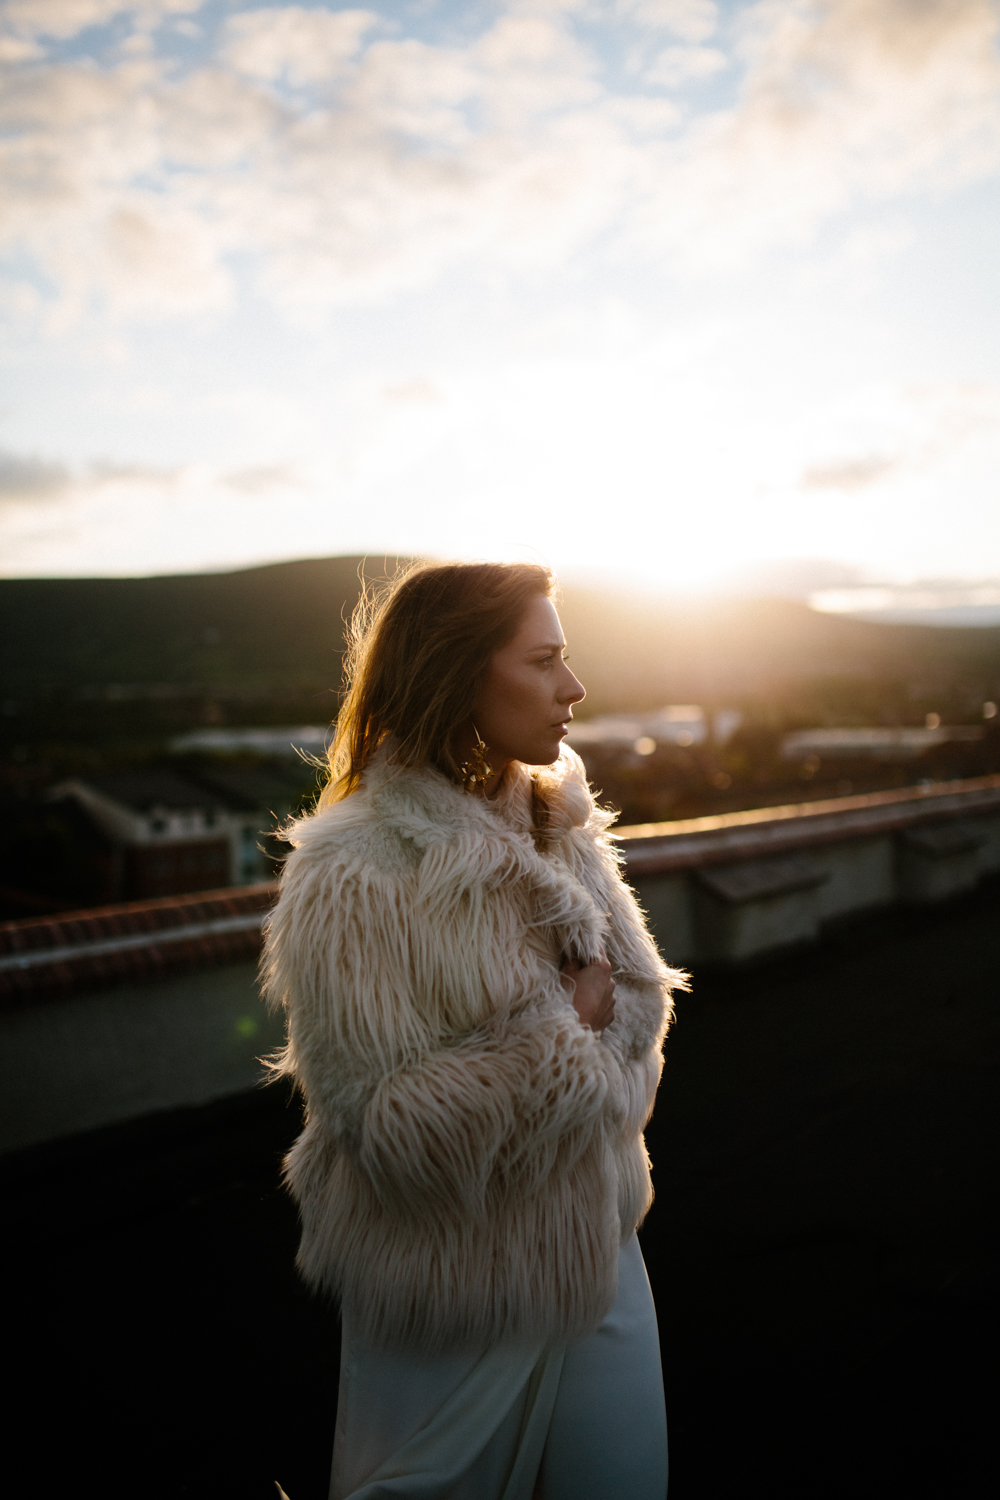 rooftop fashion photography